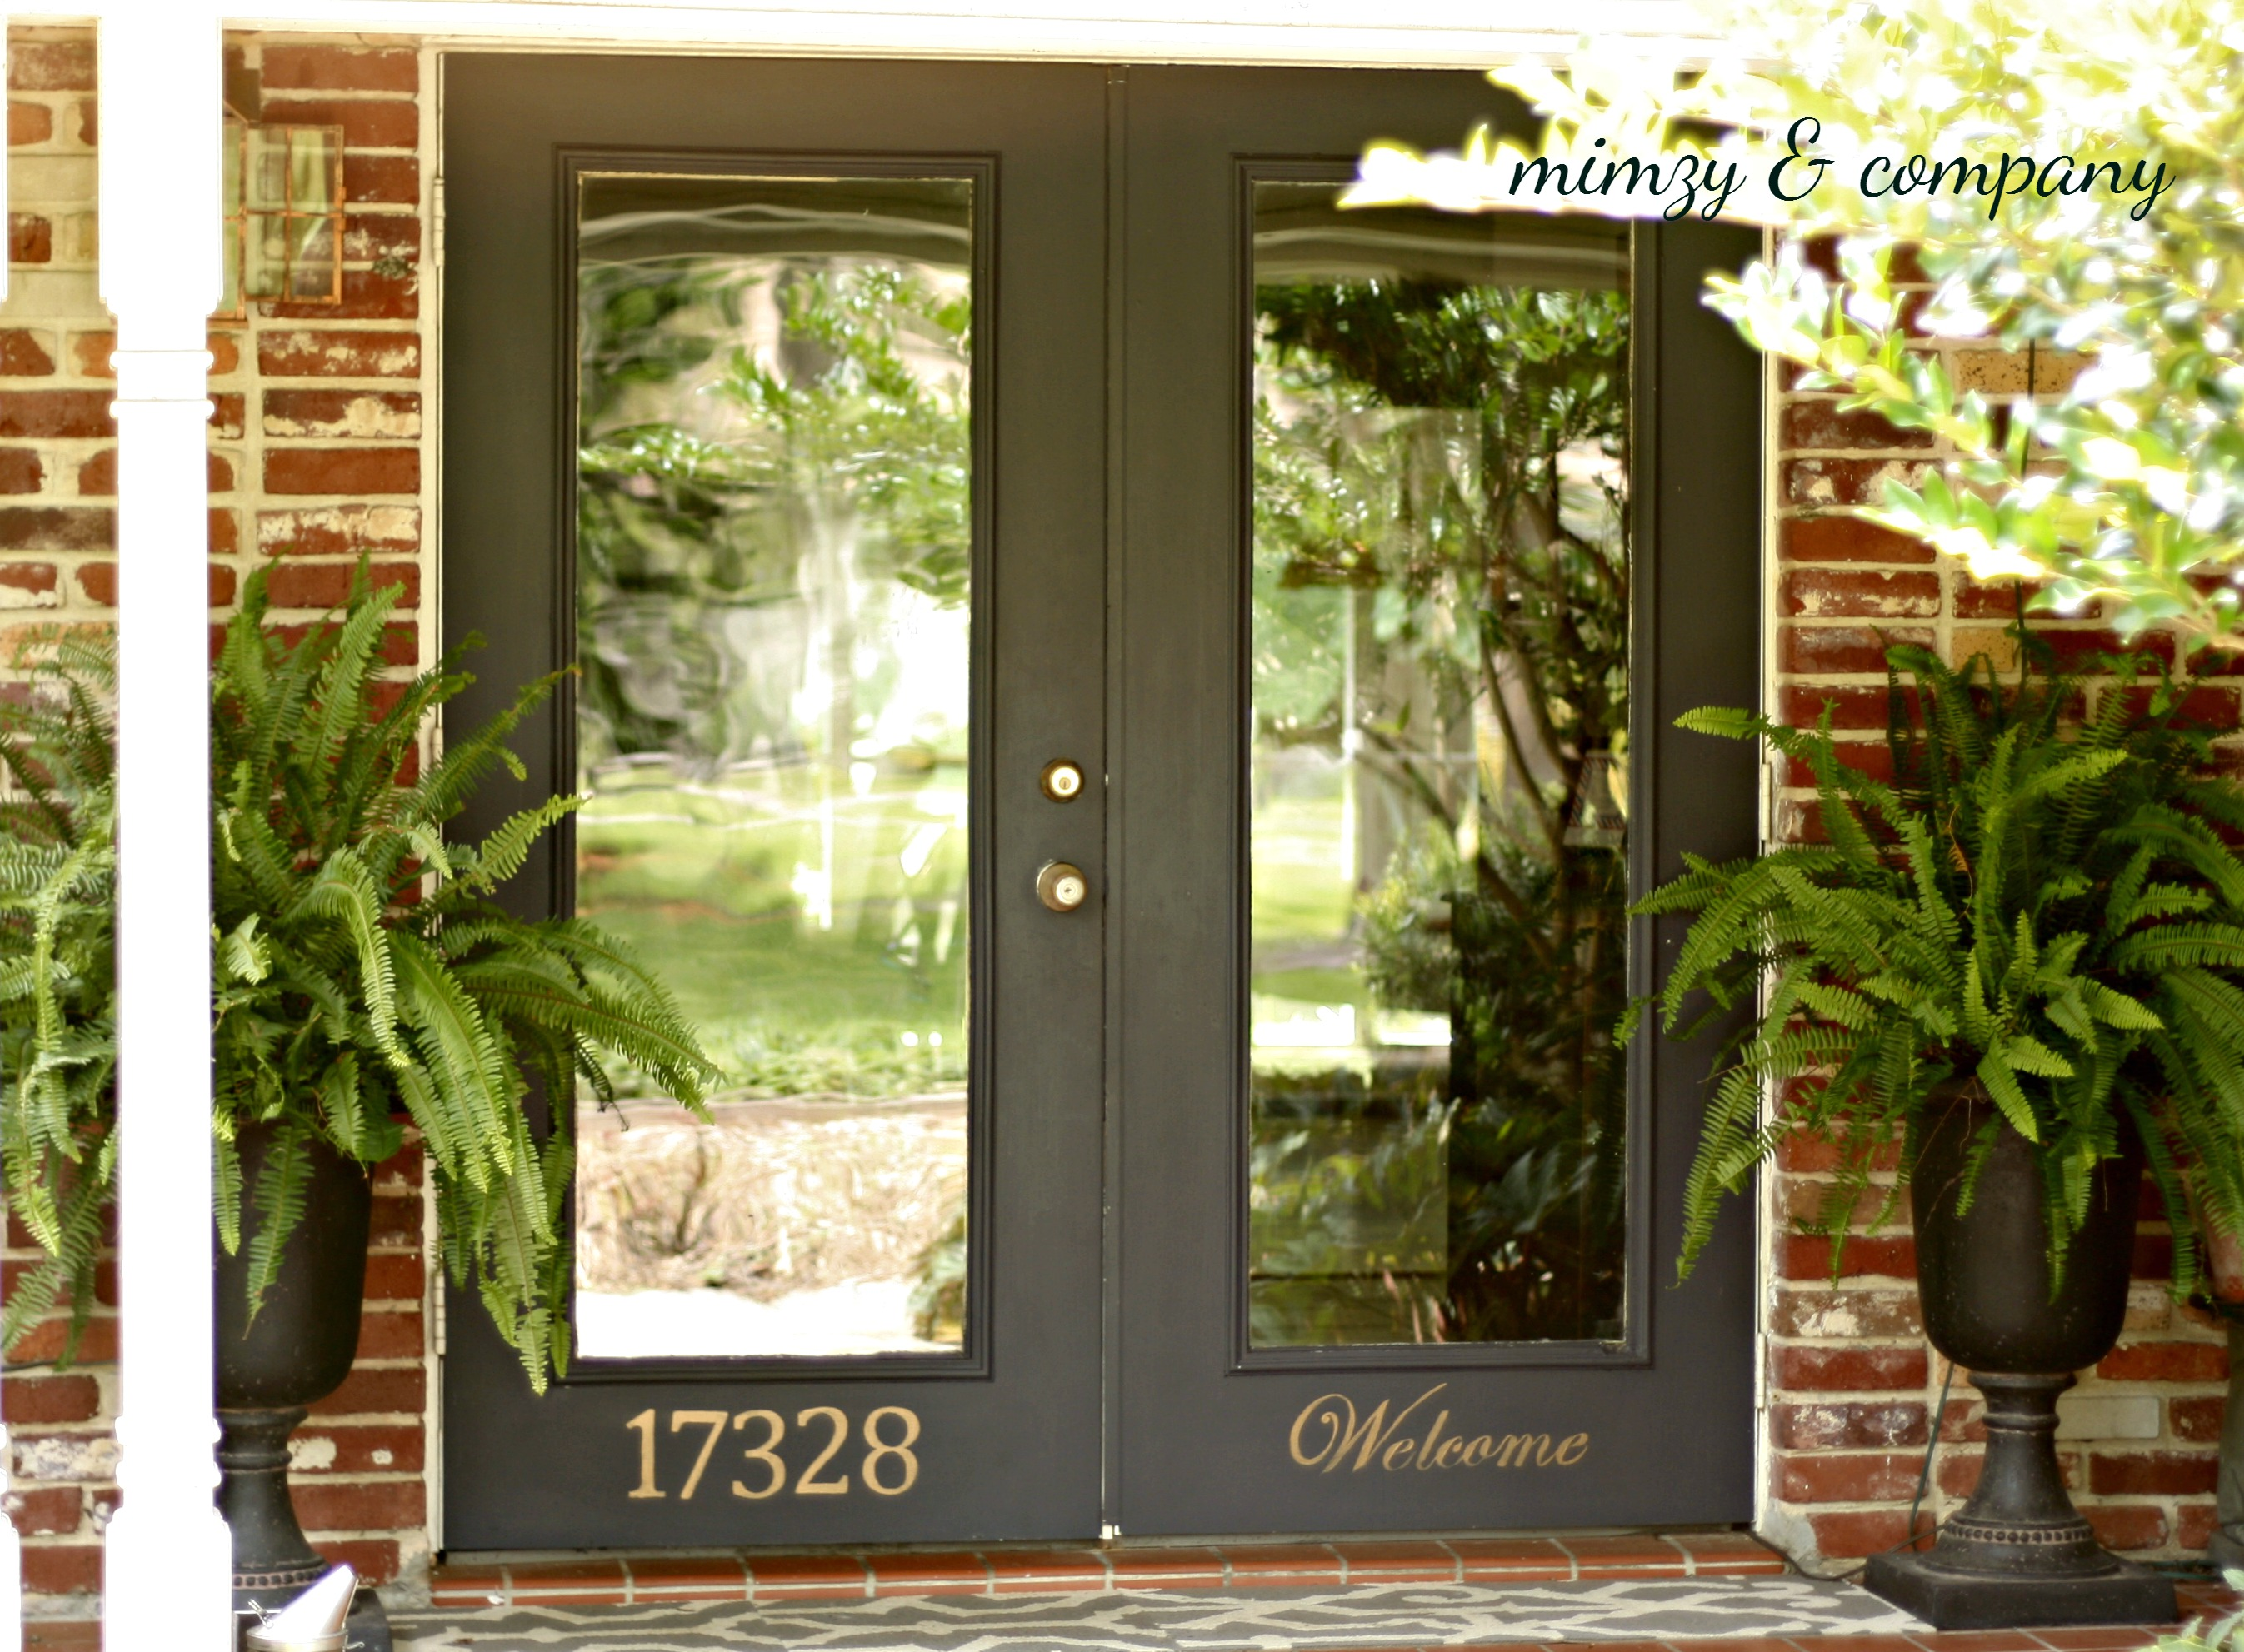 maze doors was modern inexpensive u full coloring for front house exterior imagesi blinds unique custom door low furniture brown glass image affordable plus budget lock of charm design this in cheap contemporary double entry printable entryi gallery wooden with inspirations a